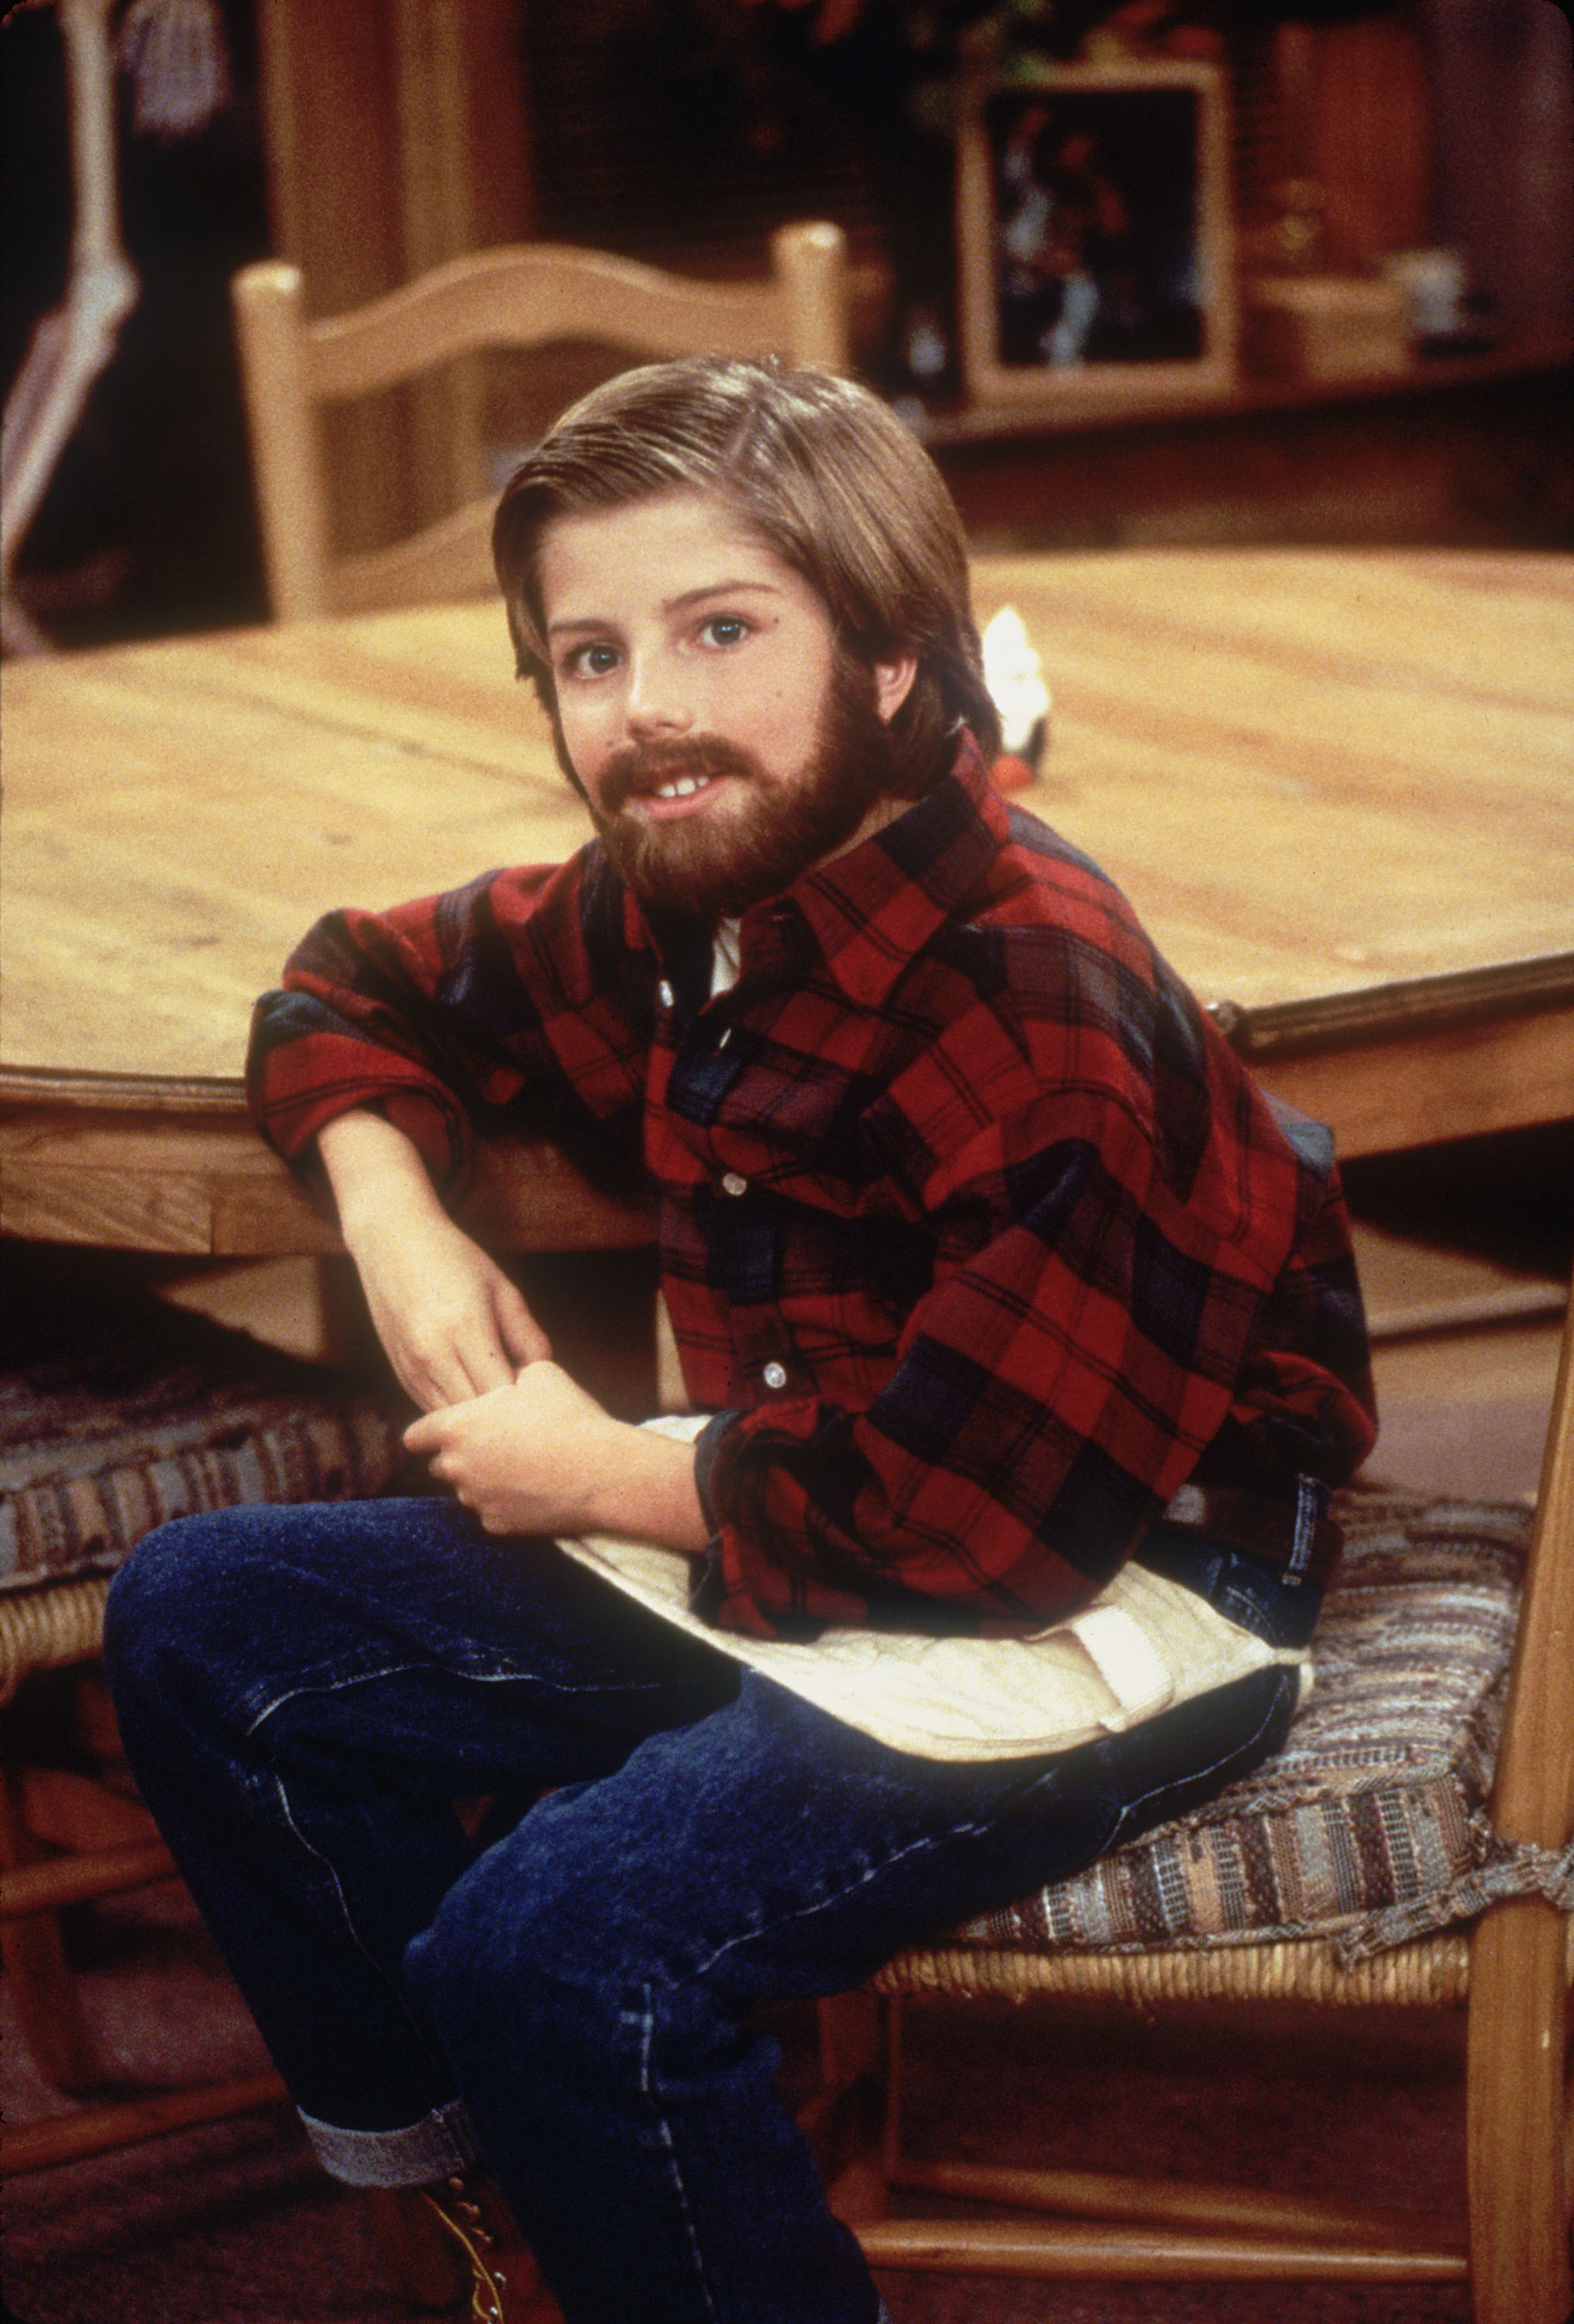 Mark - Home Improvement (TV show) Photo (33059662) - Fanpop